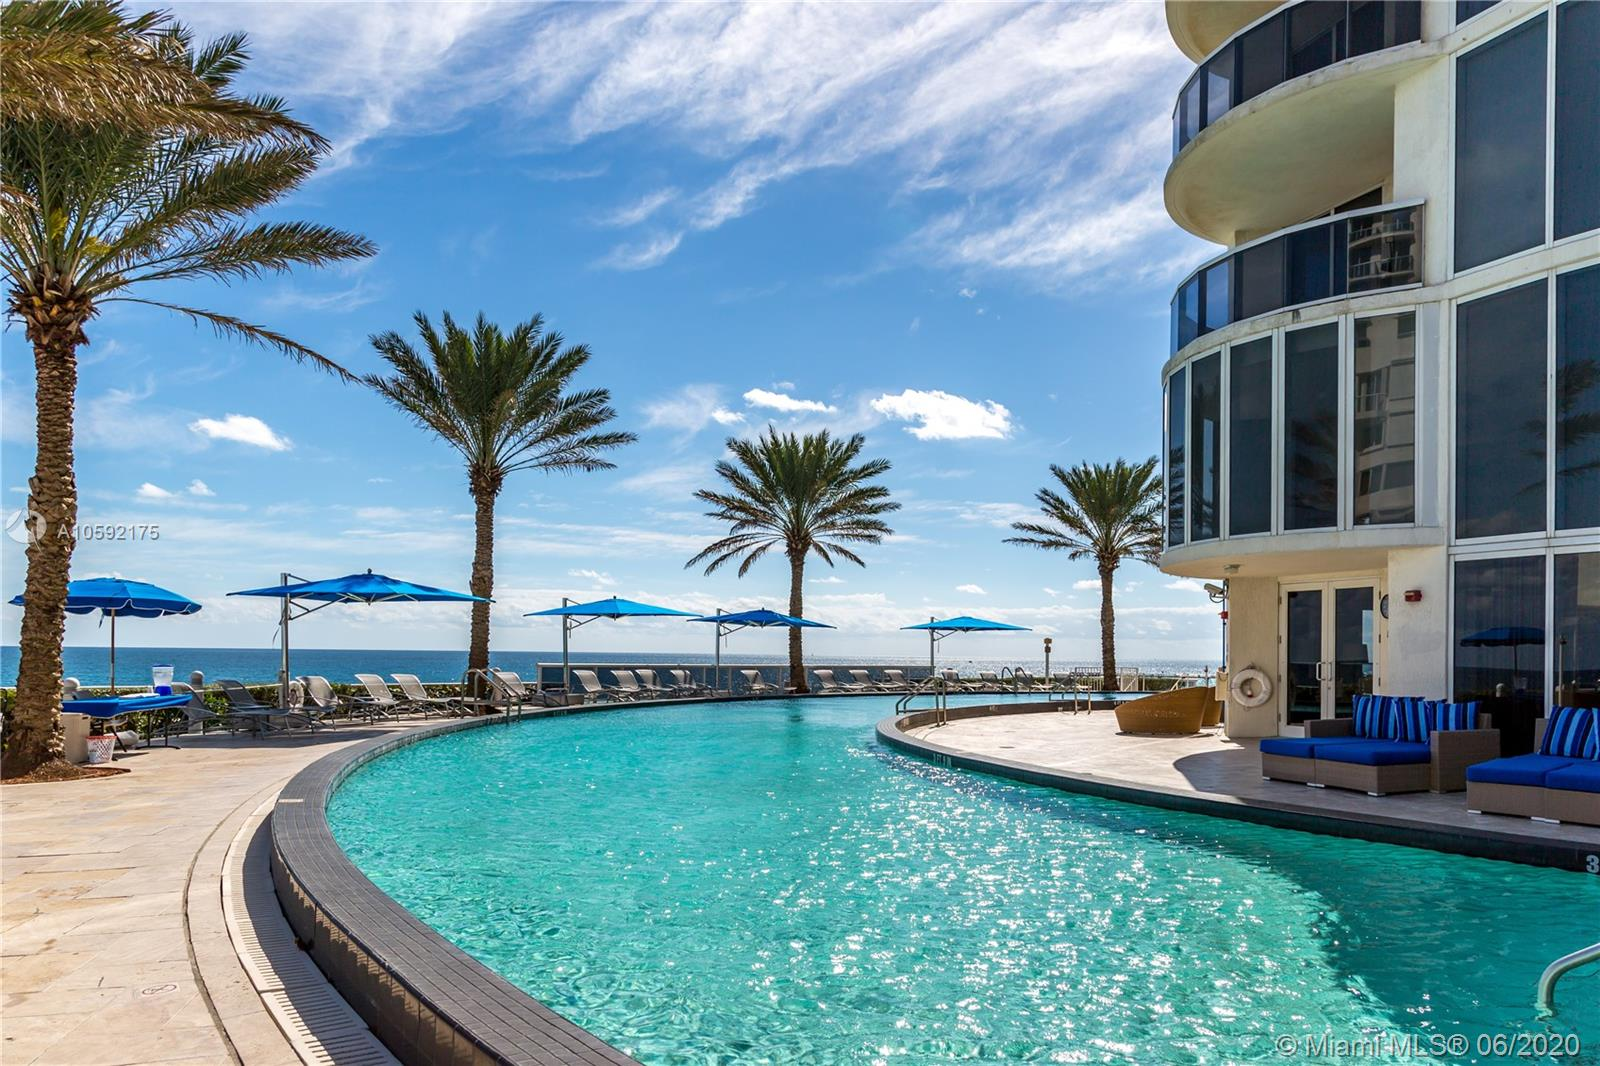 17201  Collins Ave #802 For Sale A10592175, FL